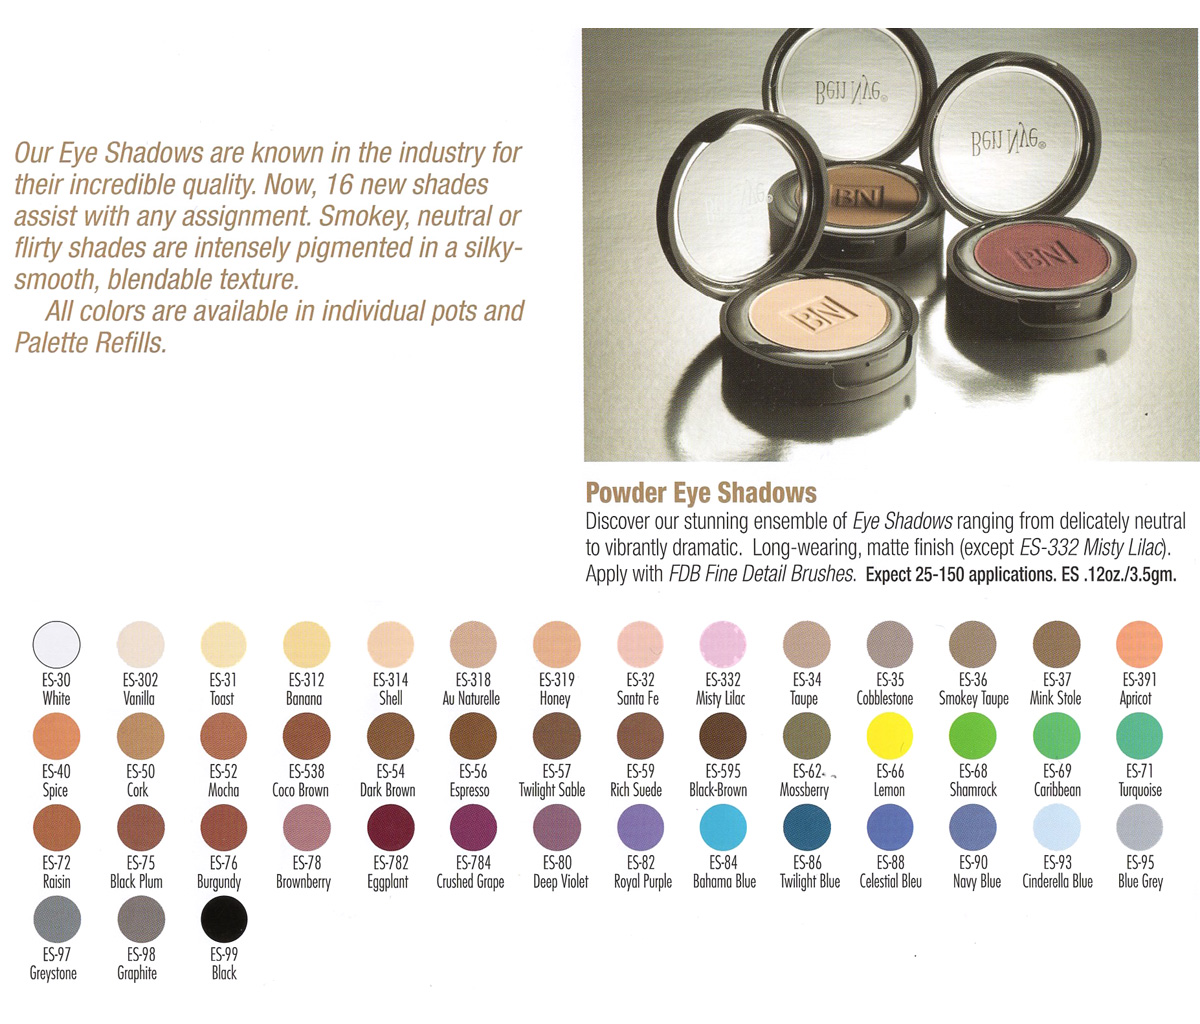 Ben Nye - Powder Eye Shadows